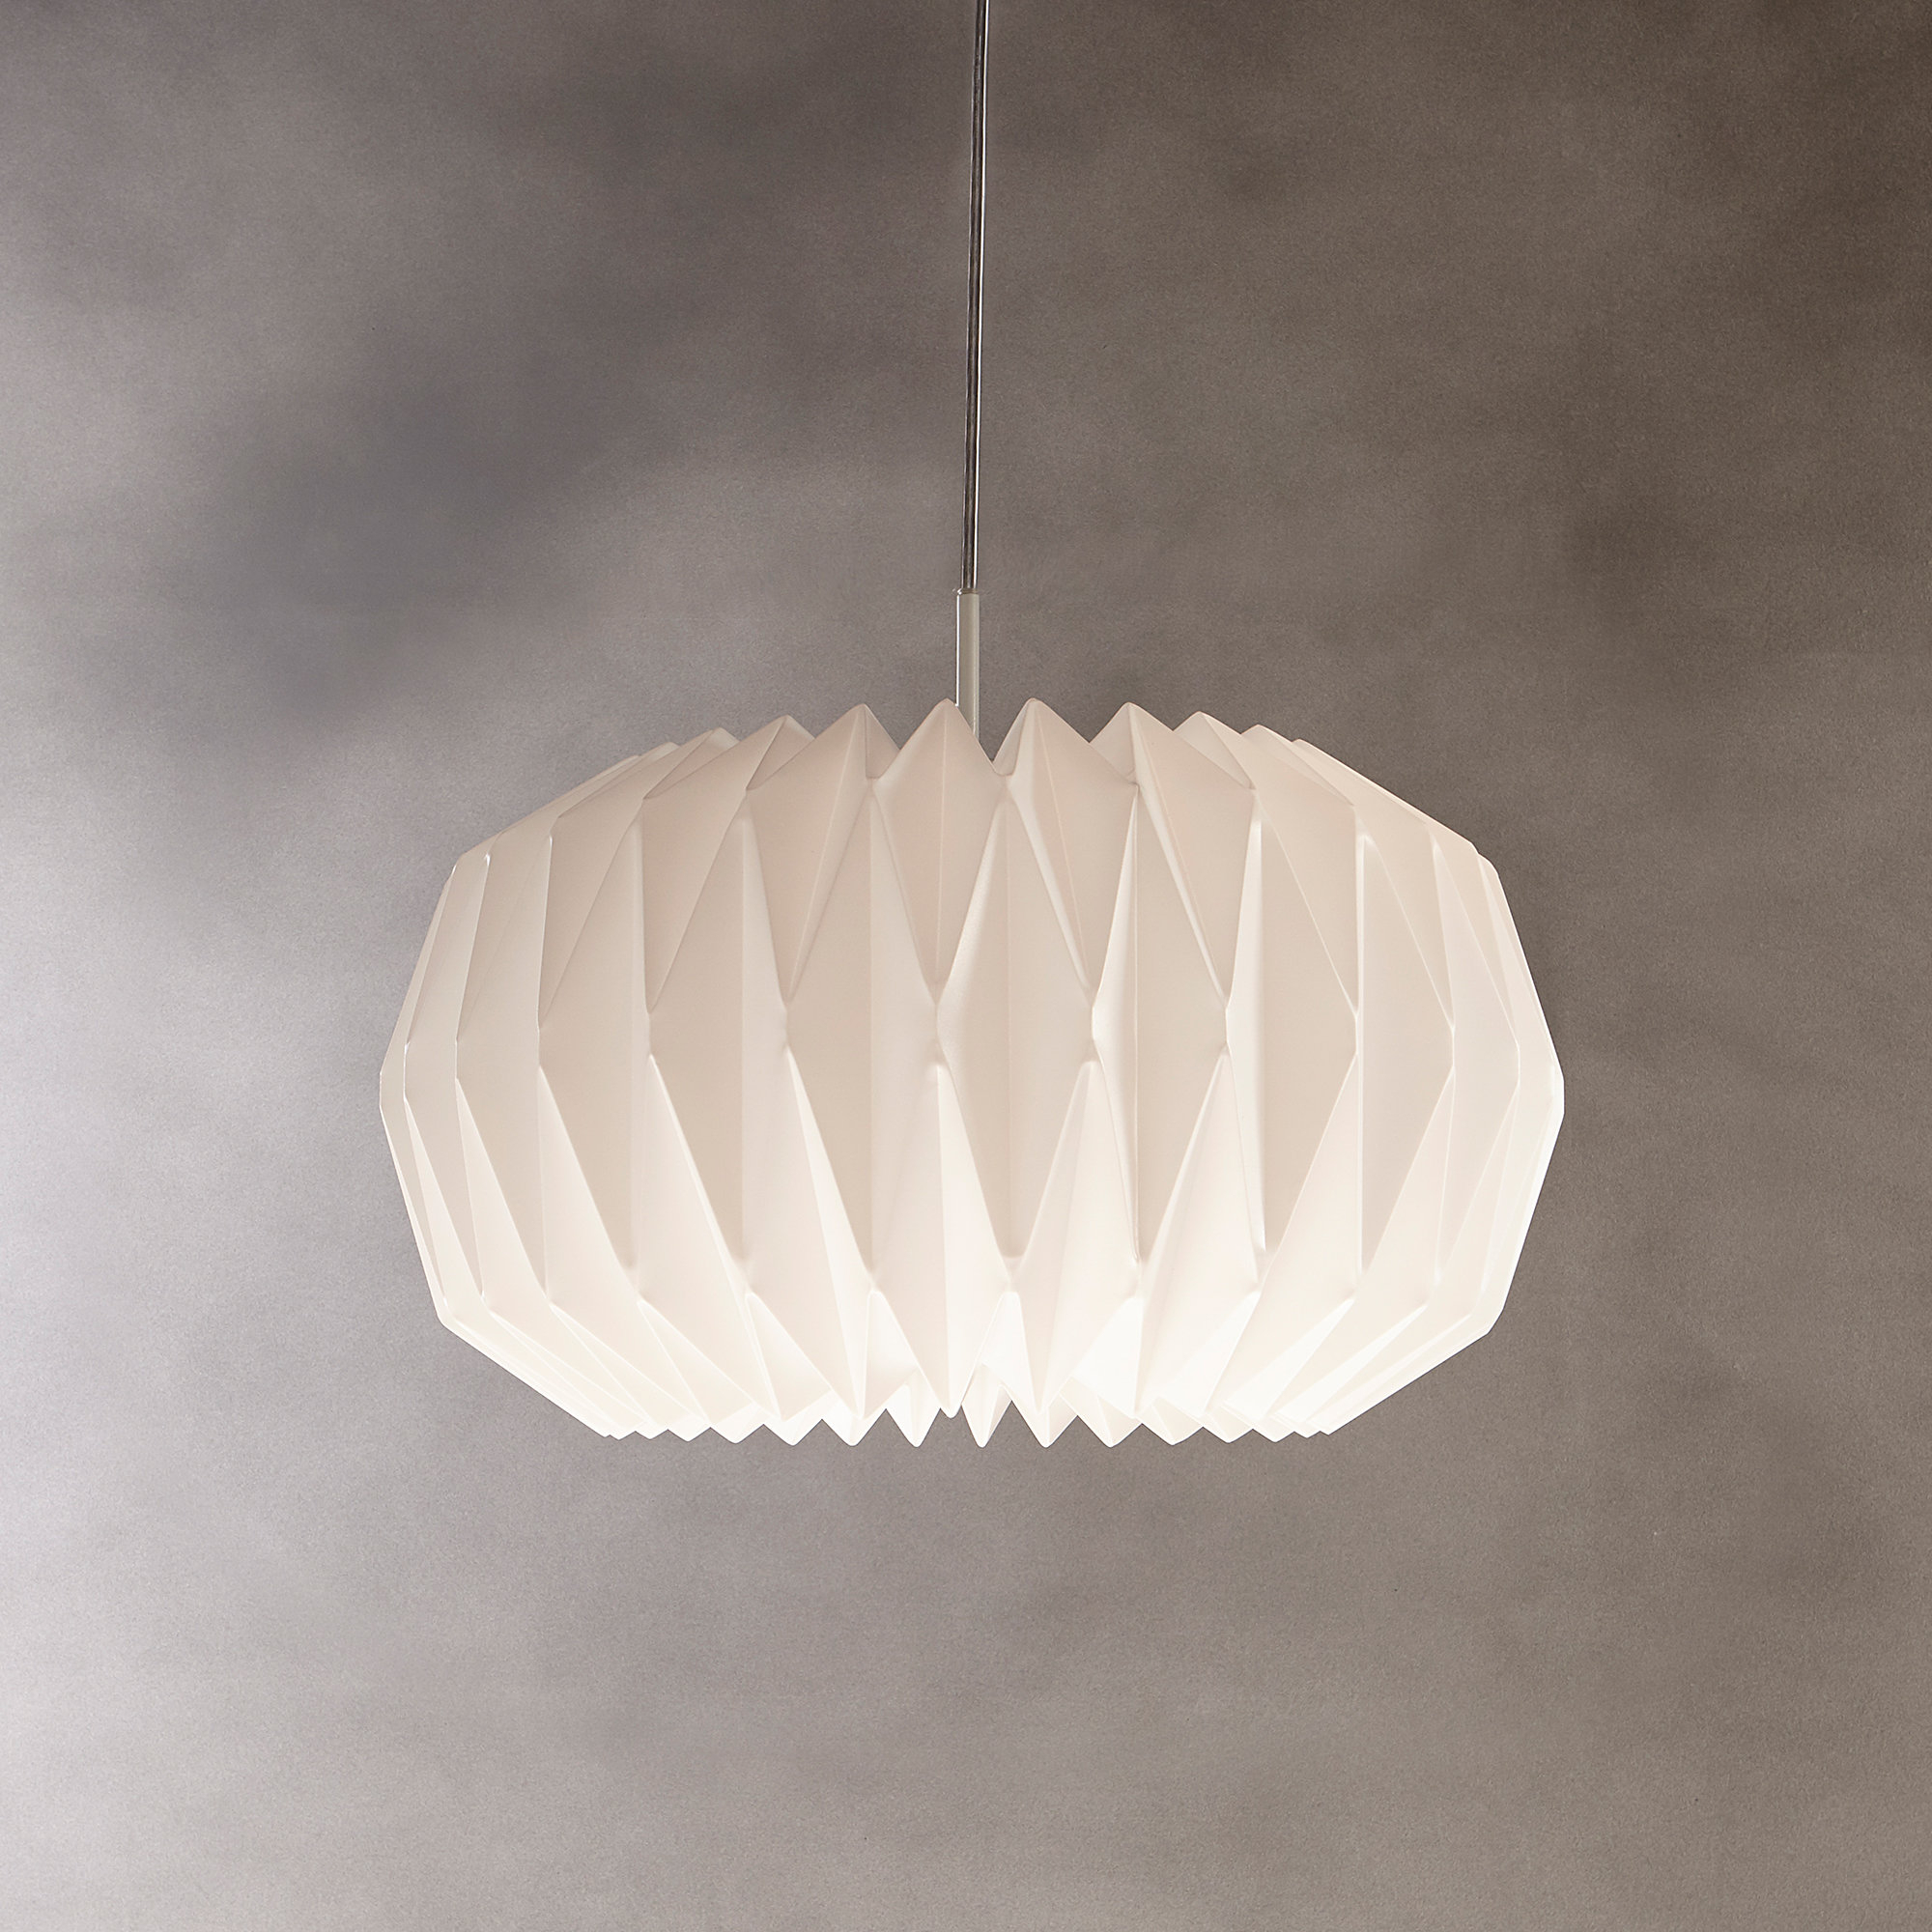 Gary Drum Pendant Throughout Latest Melora 1 Light Single Geometric Pendants (View 5 of 20)